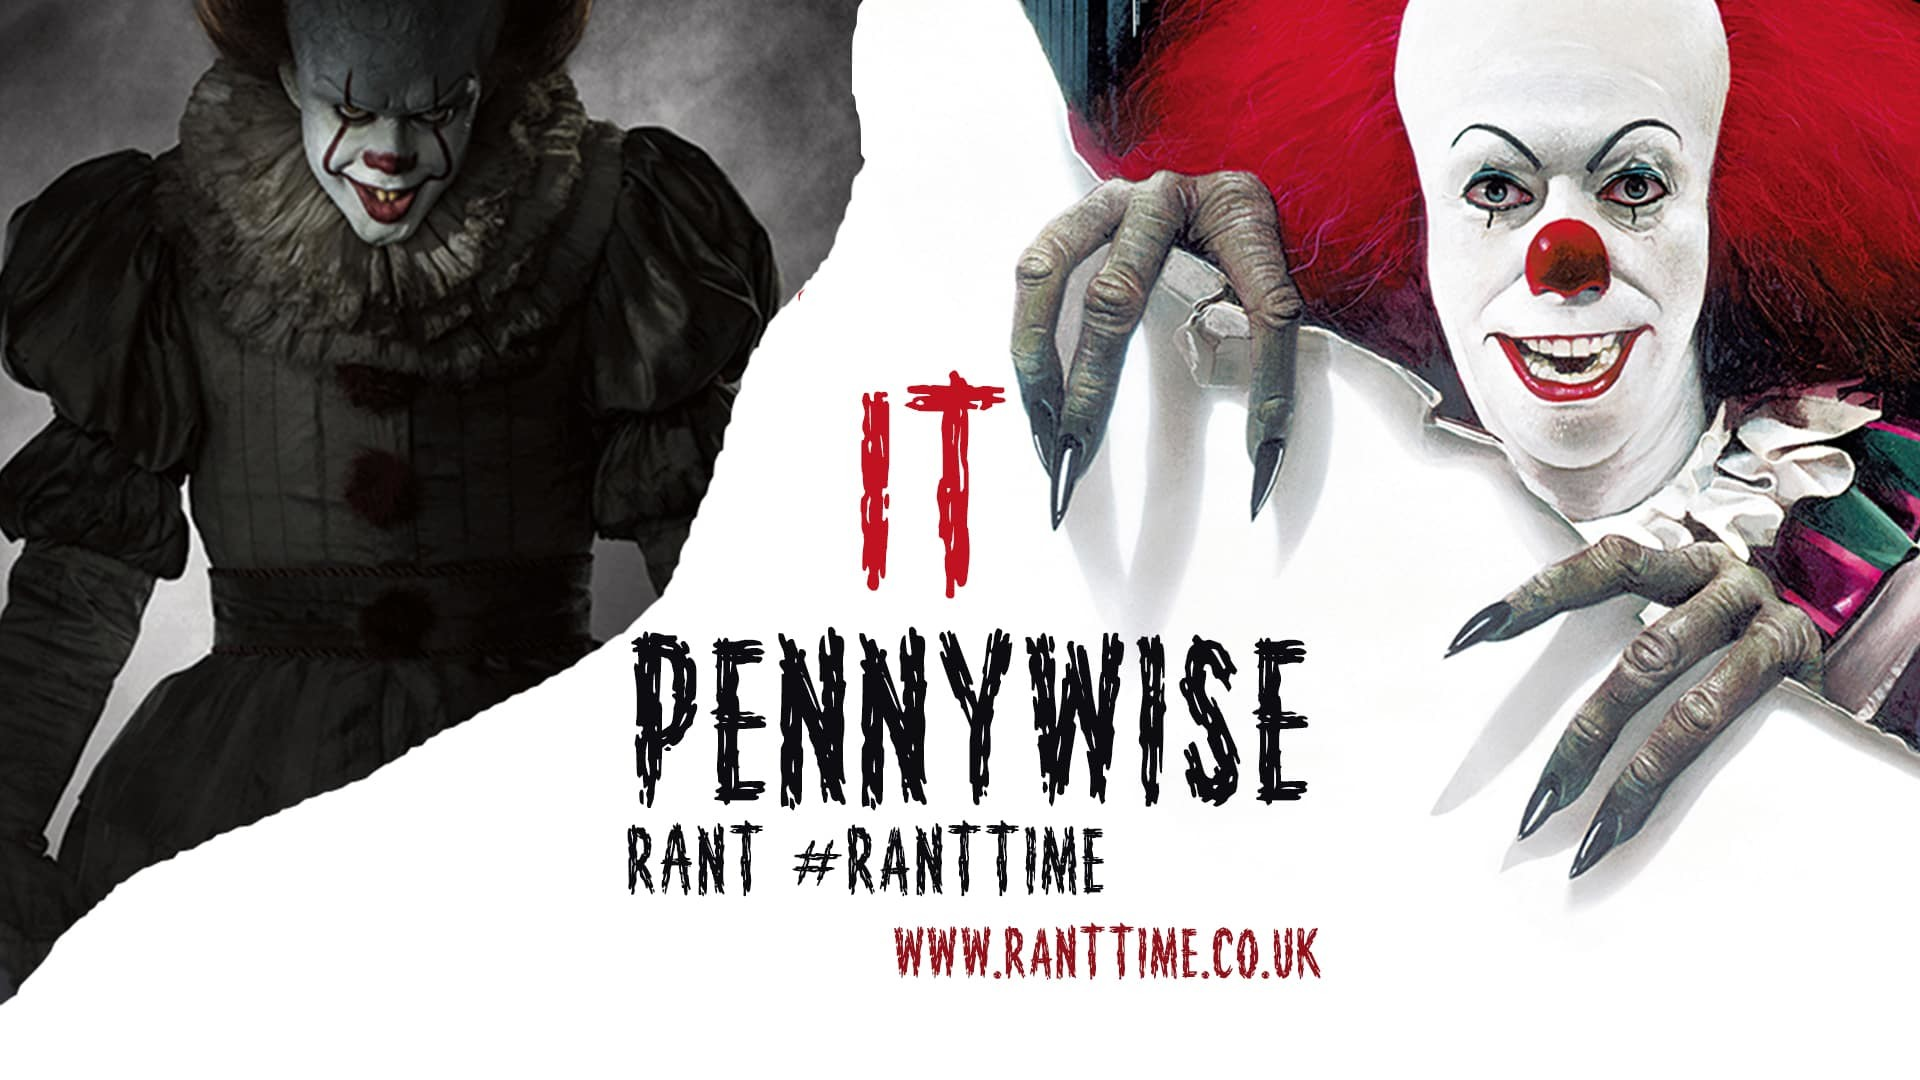 Pennywise The Clown 1990wallpaper: Pennywise The Clown Wallpaper (73+ Images